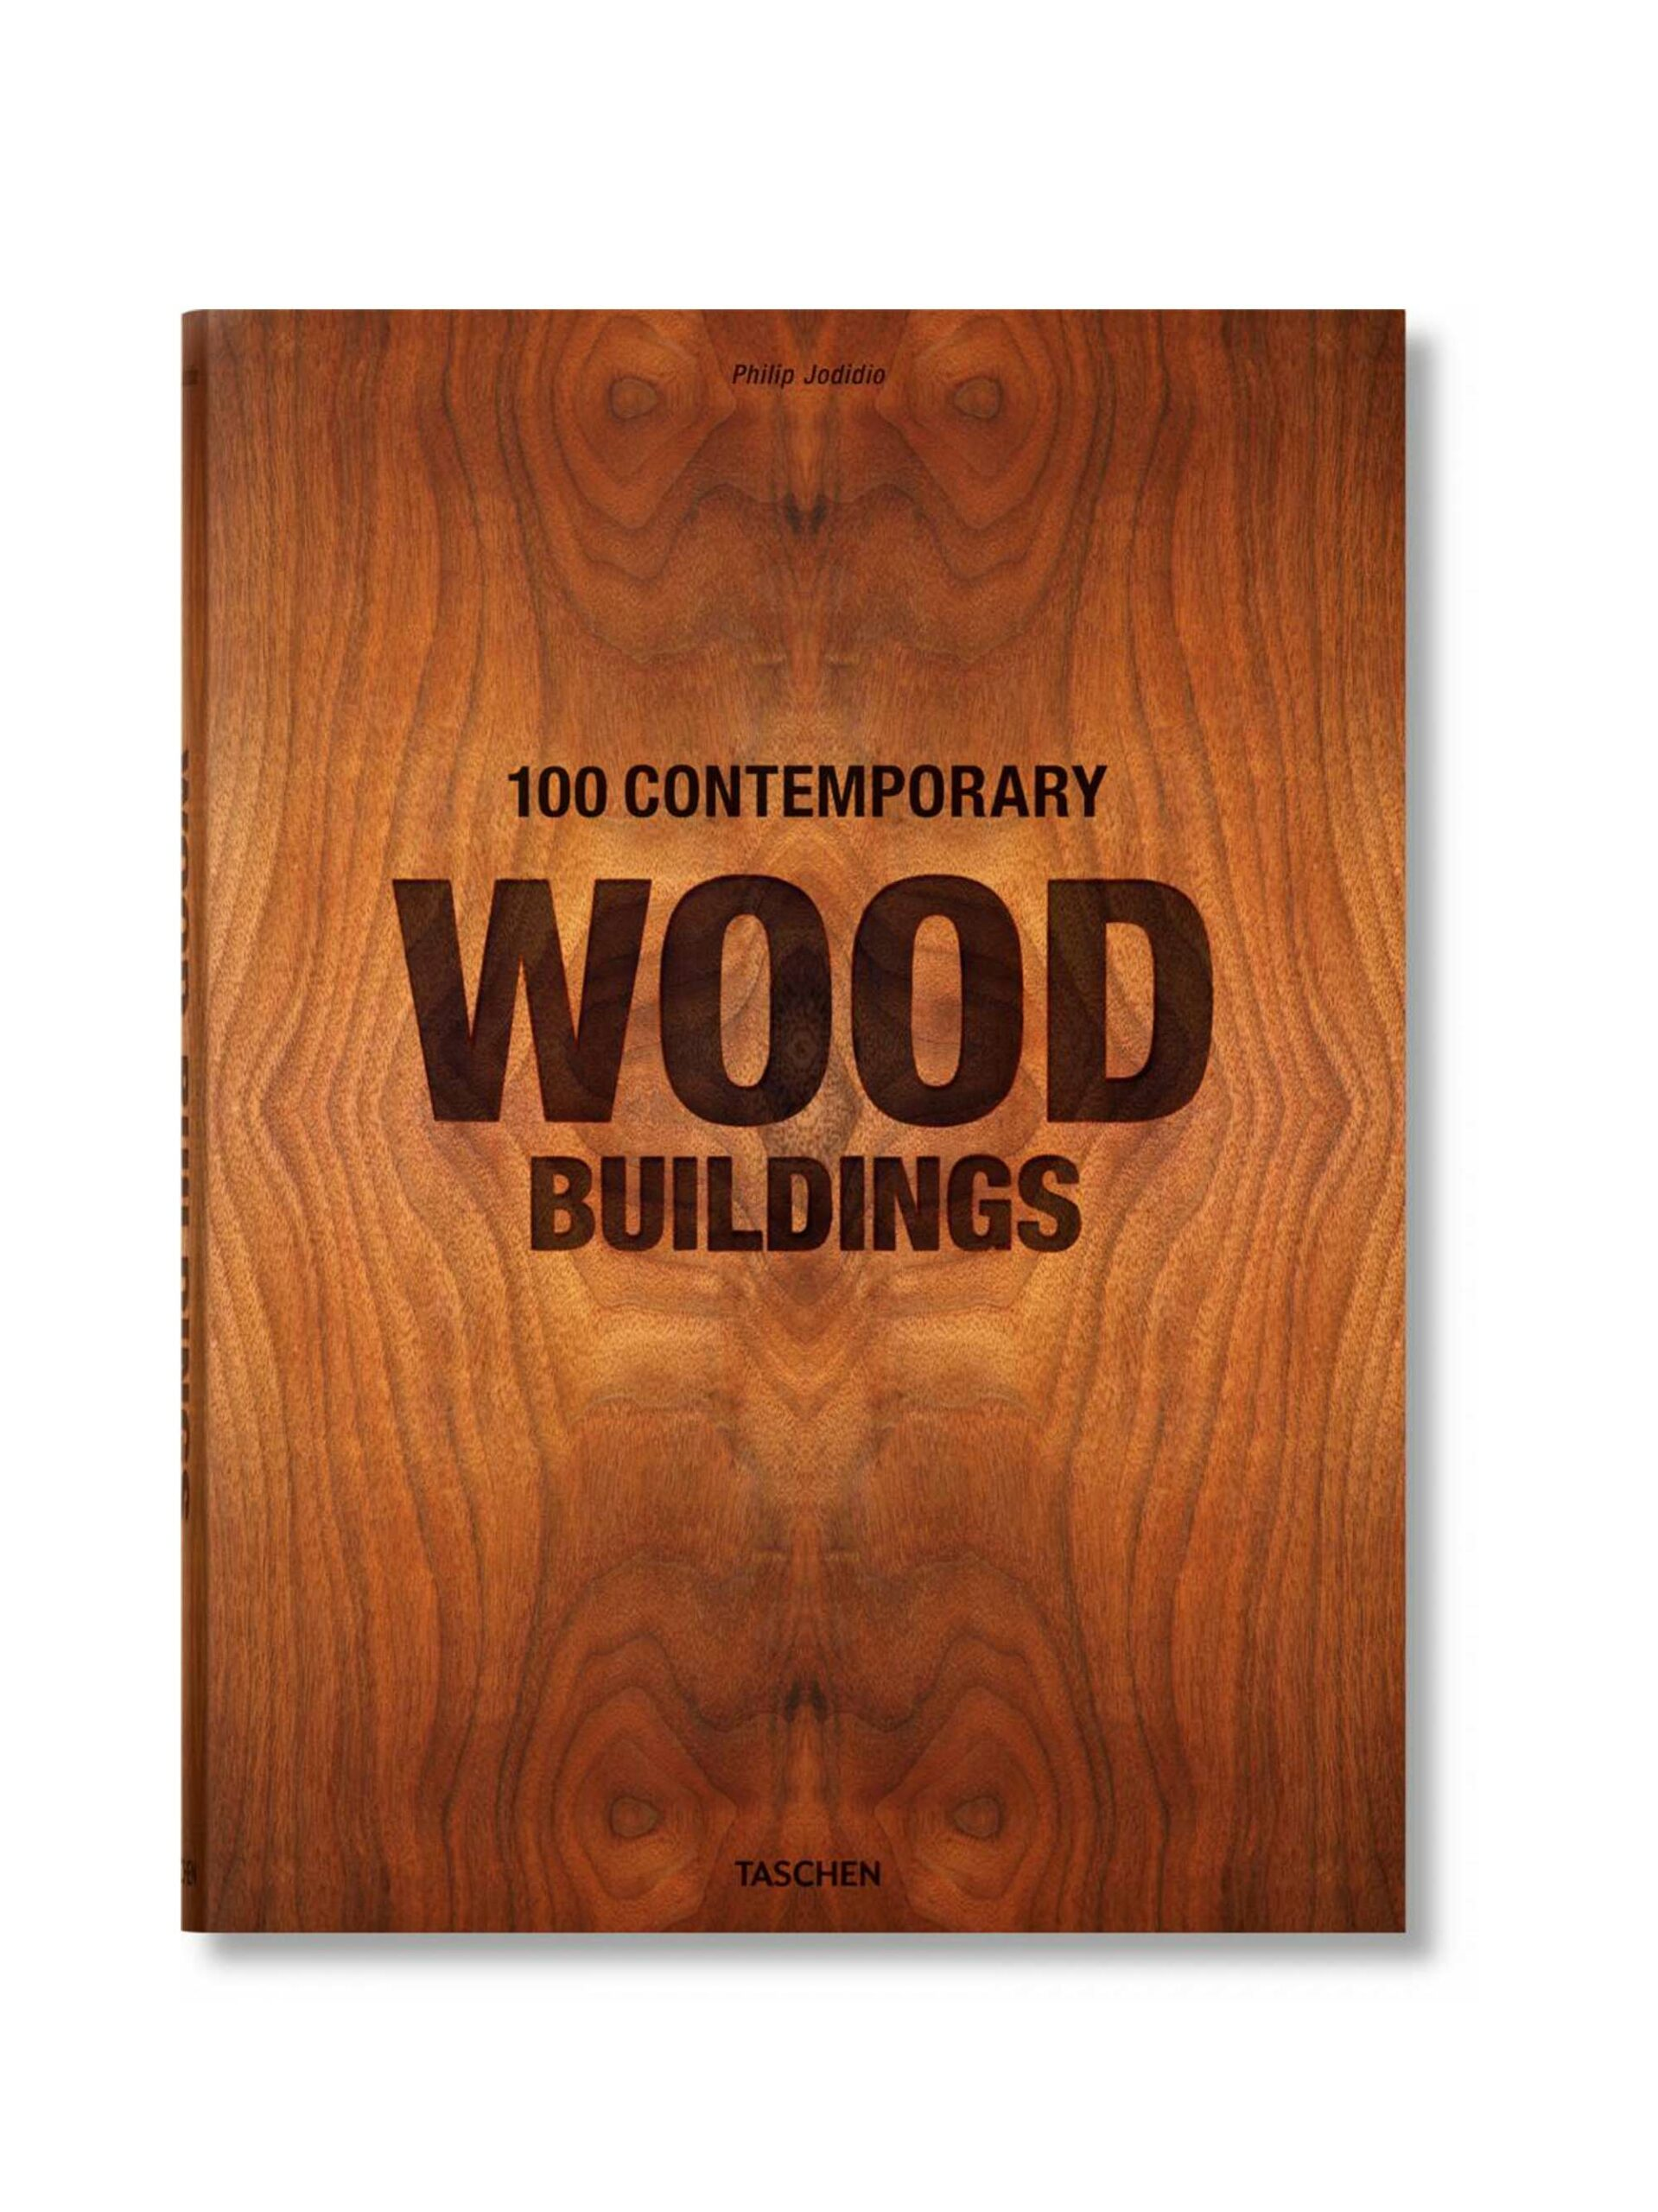 <p class='small-title'>TASCHEN</p>100 Contemporary Wood Buildings